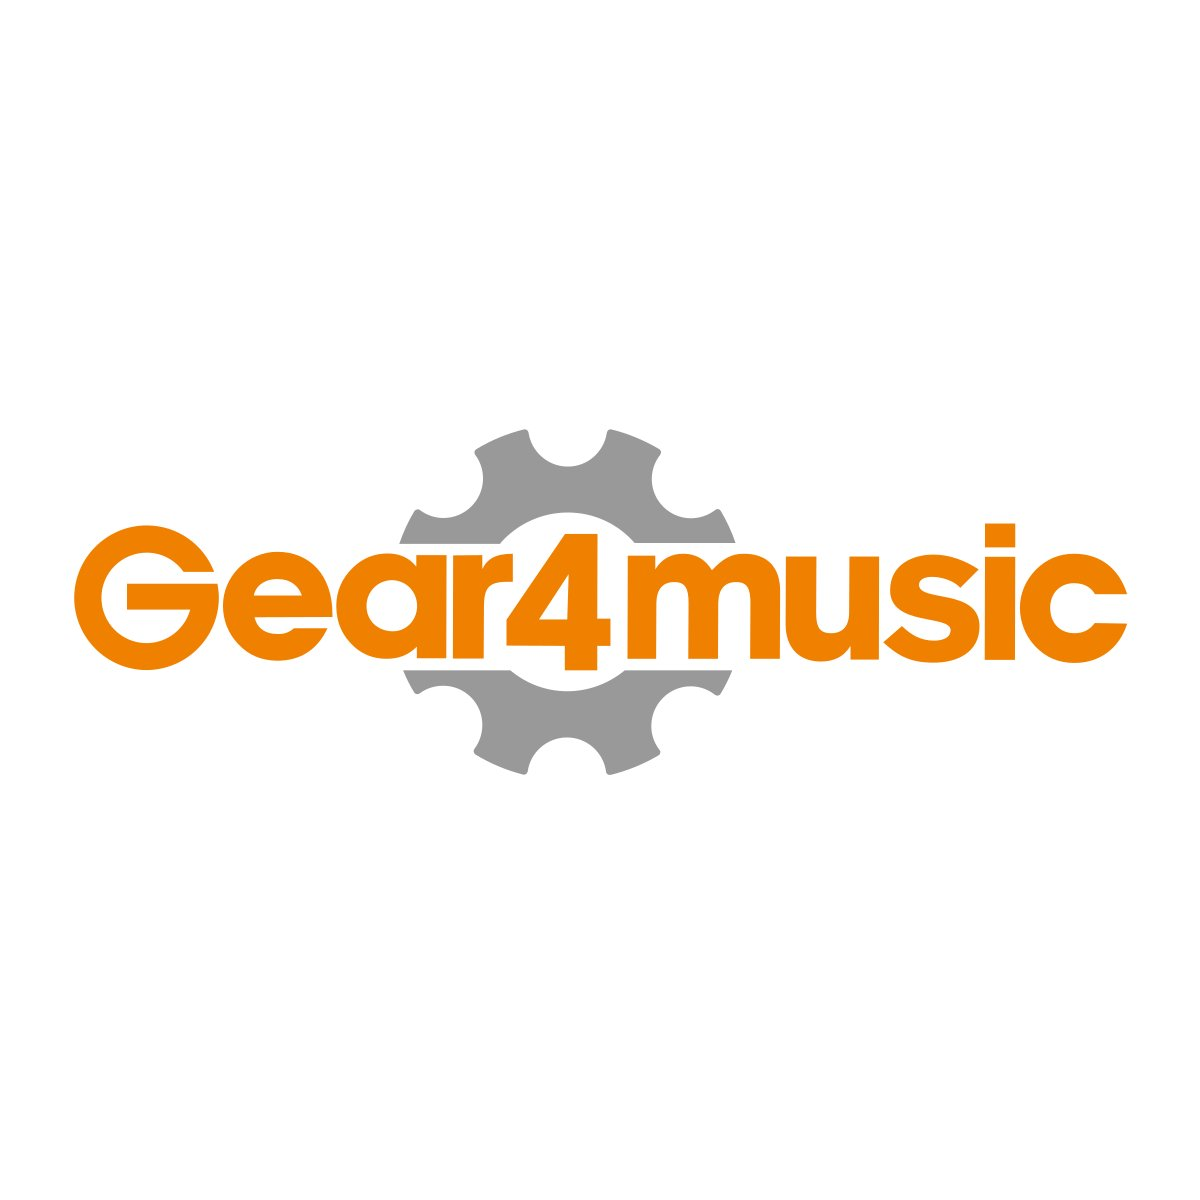 Tamburello a forma di D Gear4music Blu